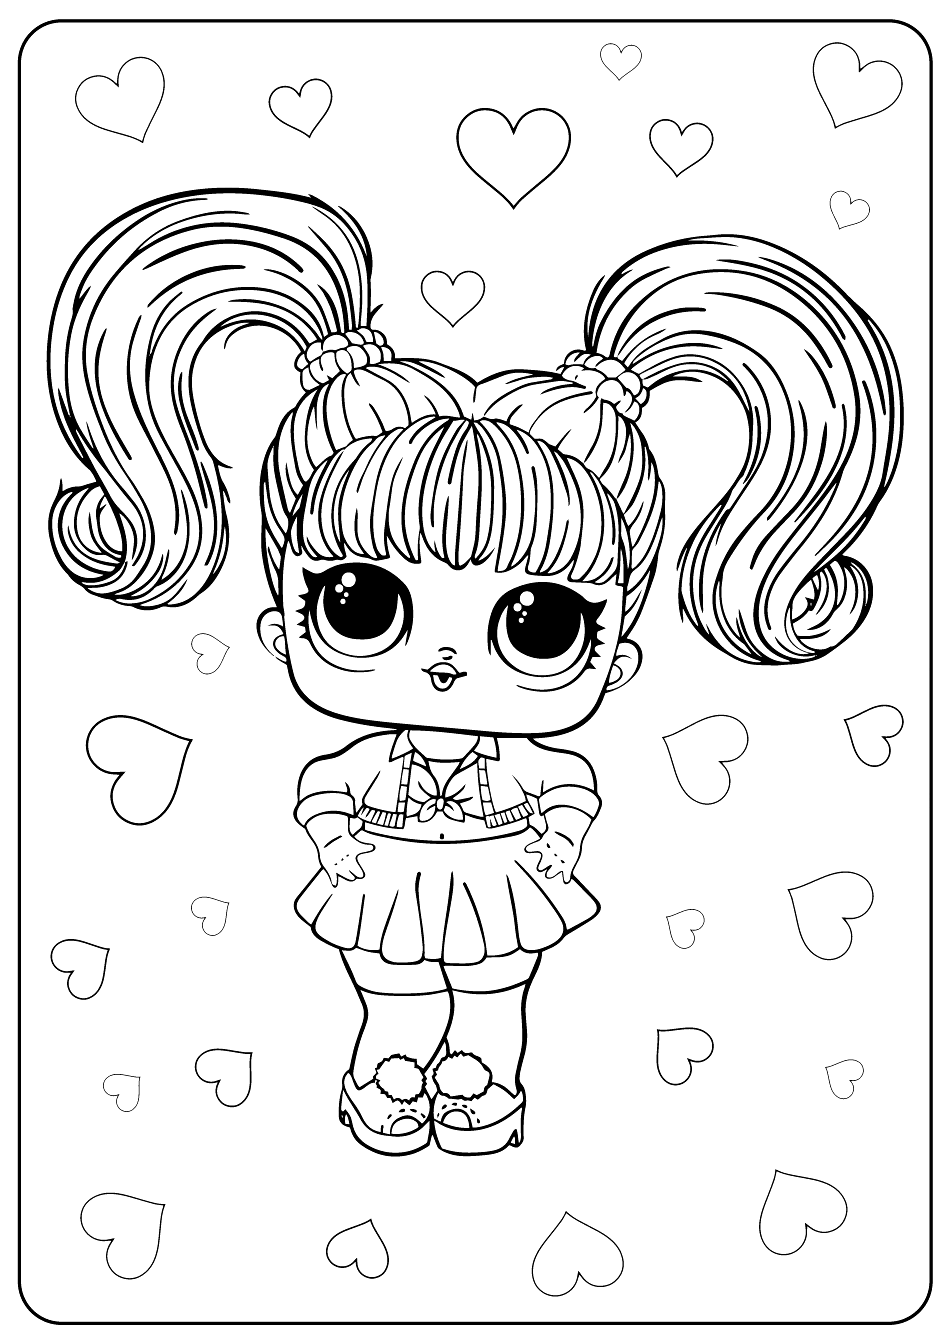 Printable Lol Surprise Oops Baby Coloring Pages Lol Lolsurprise Coloring Drawing Painting In 2020 Baby Coloring Pages Cartoon Coloring Pages Cute Coloring Pages